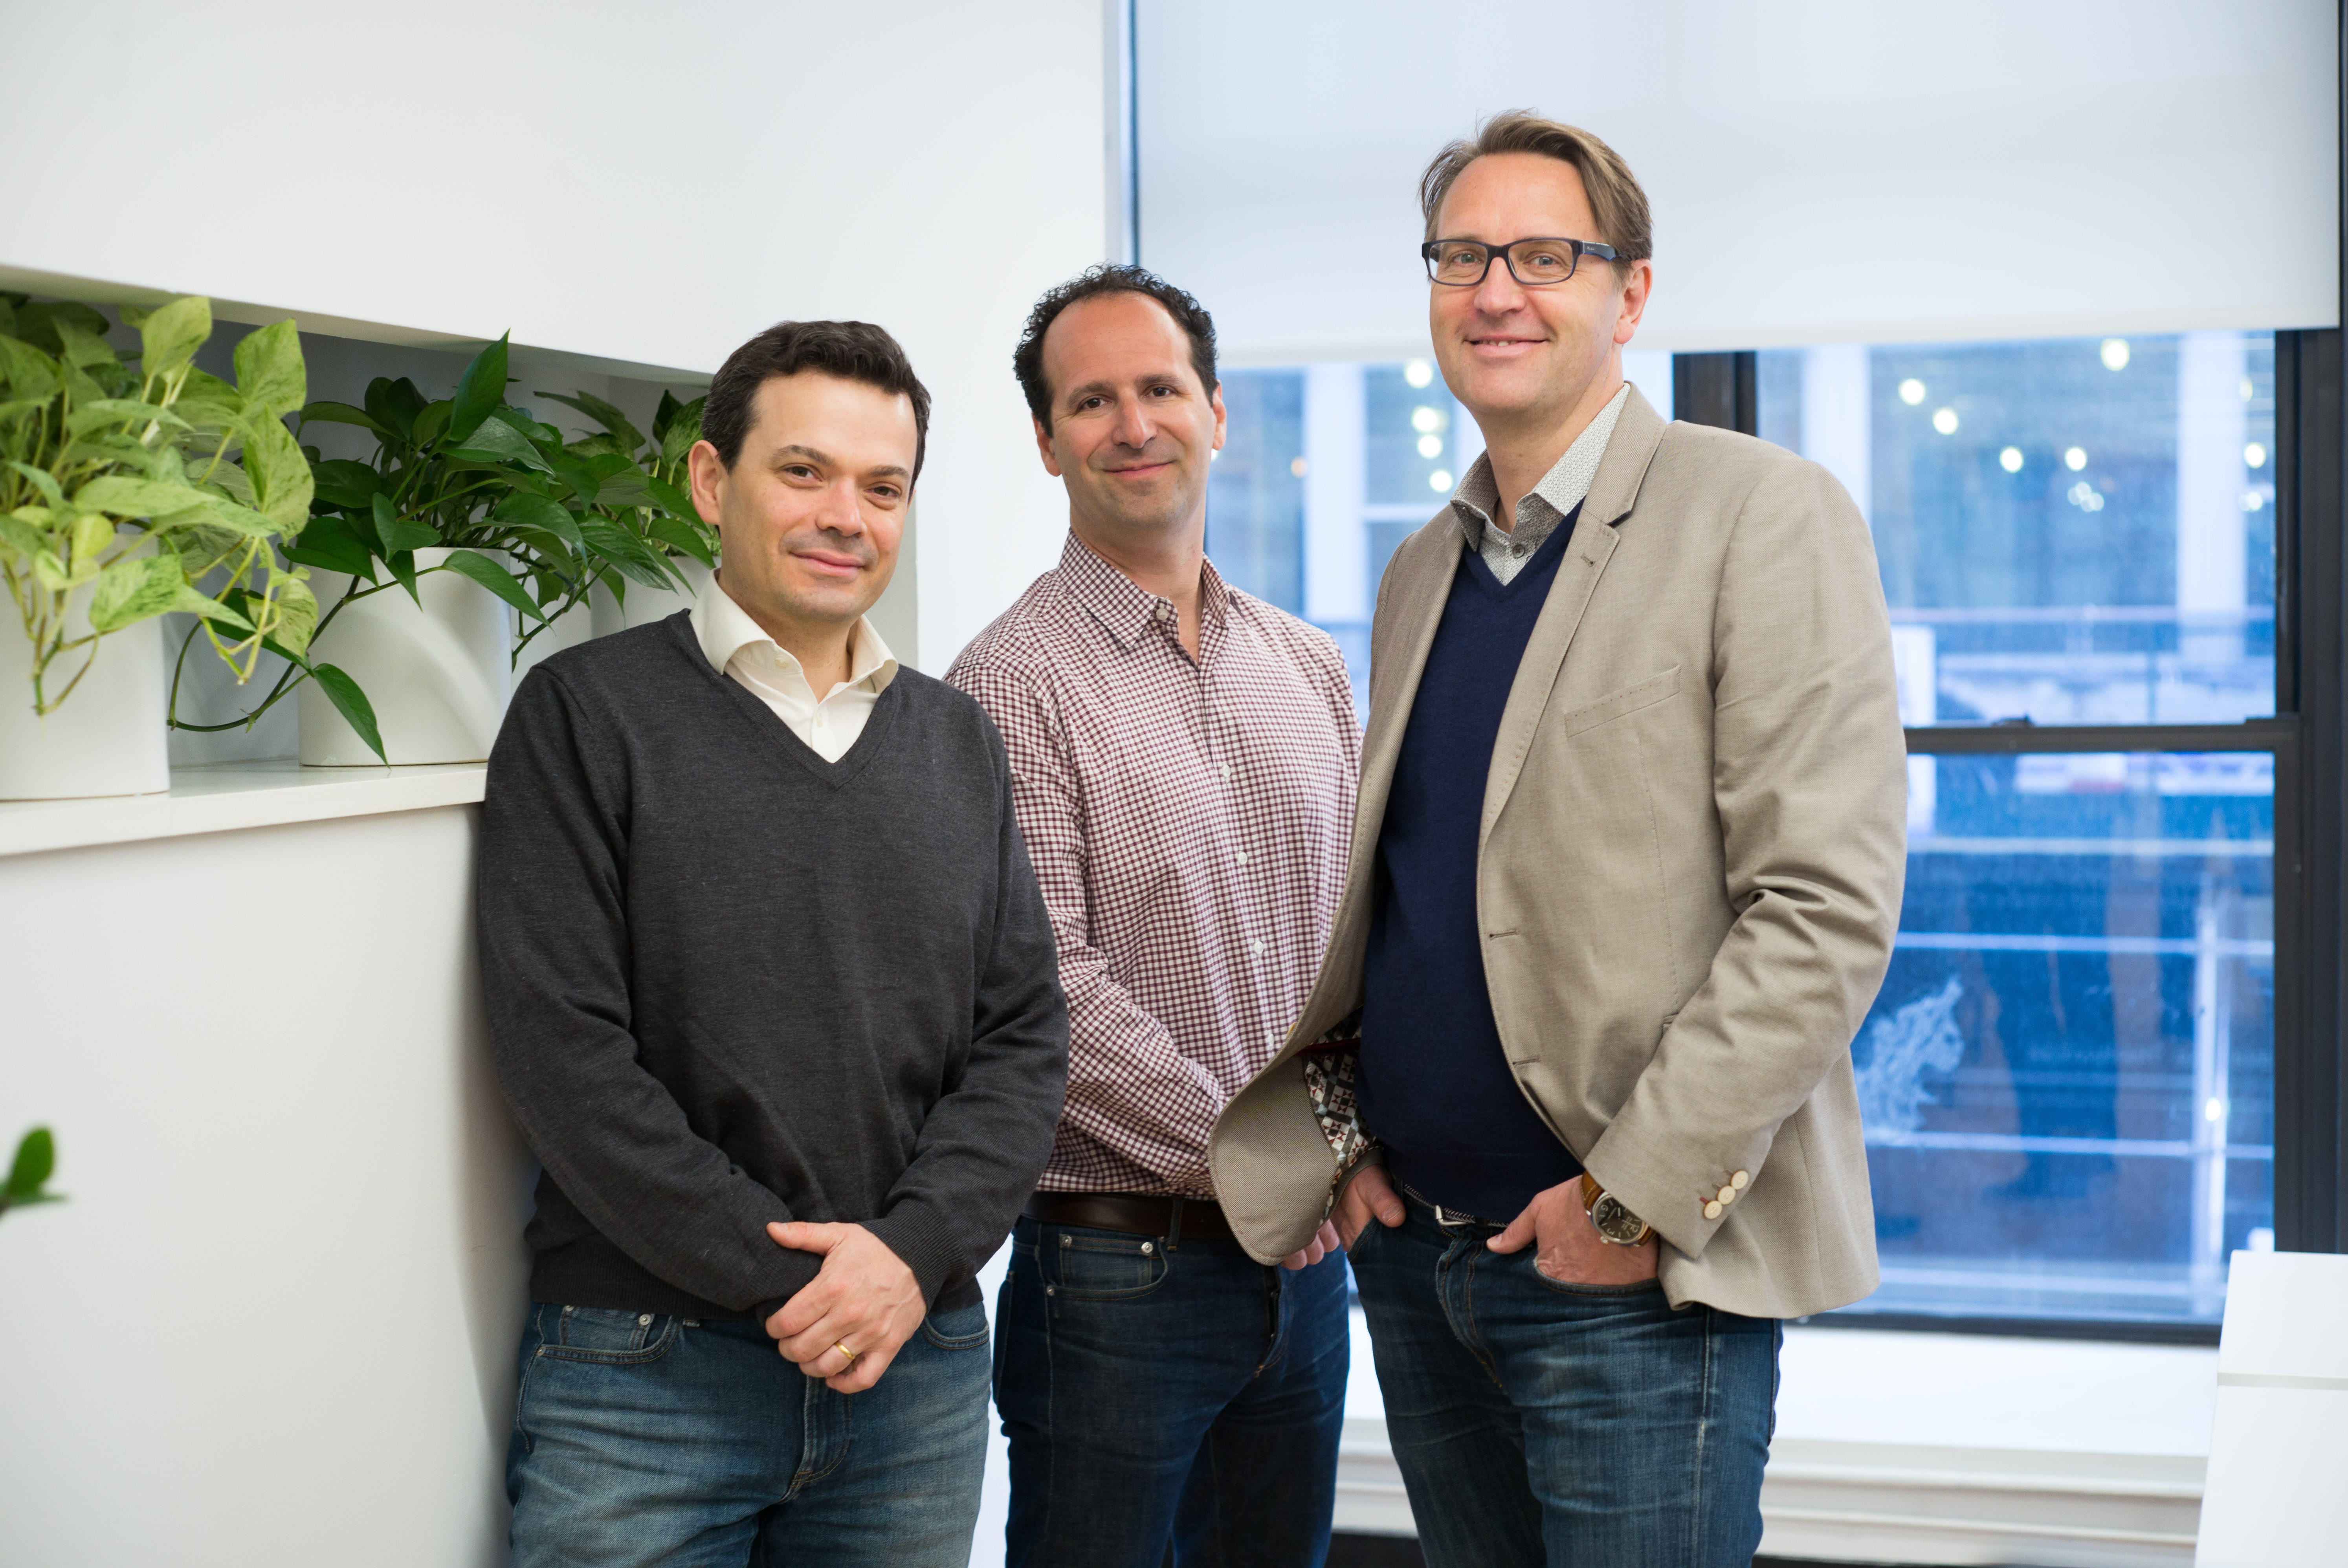 f283671d44 extend-co-founders-from-left-guillaume-bouvard-danny-morrow-and-andrew-jamison.jpg